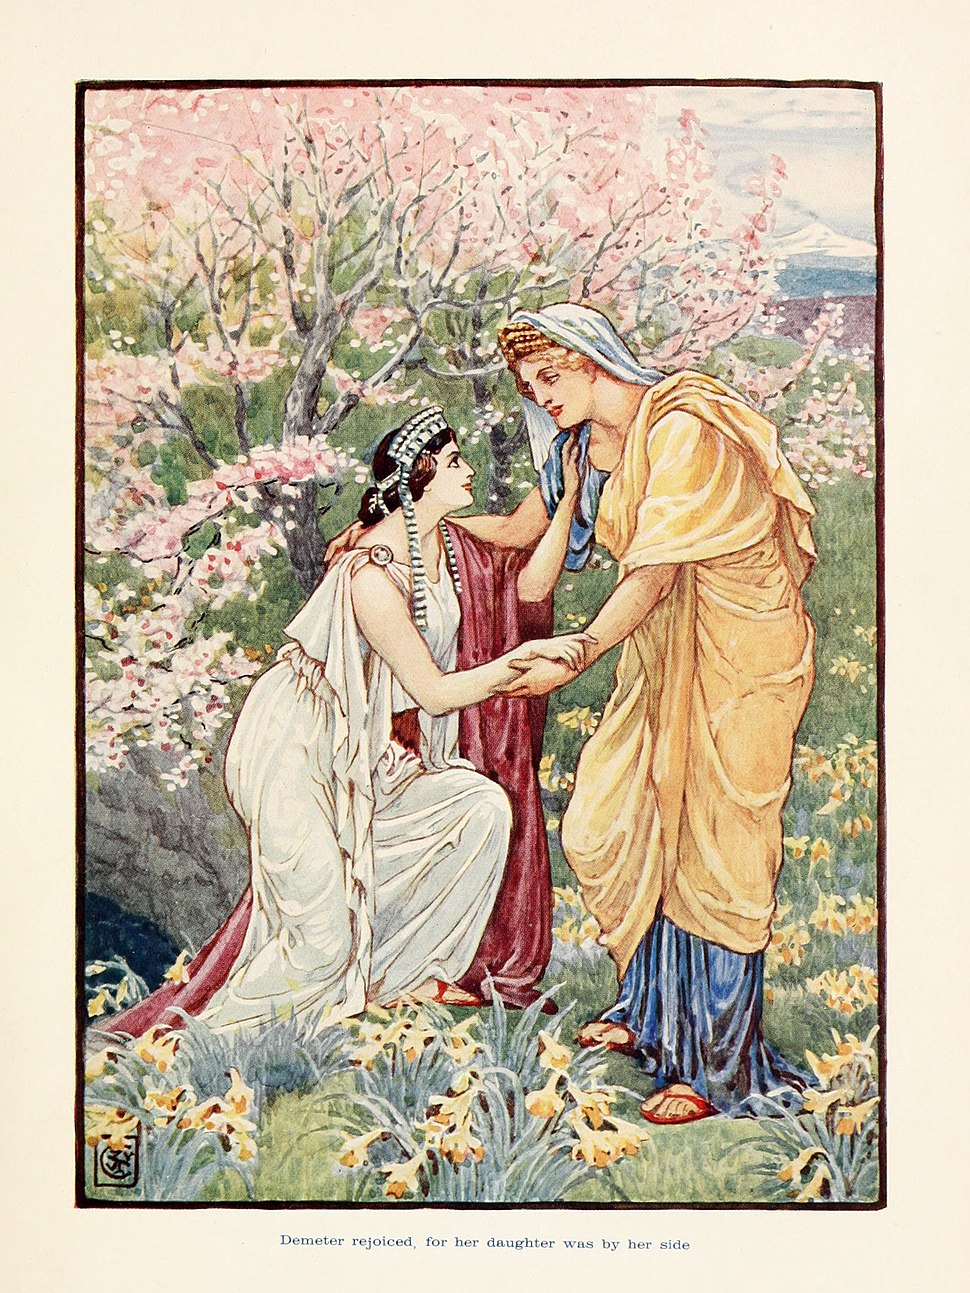 Demeter rejoiced, for her daughter was by her side